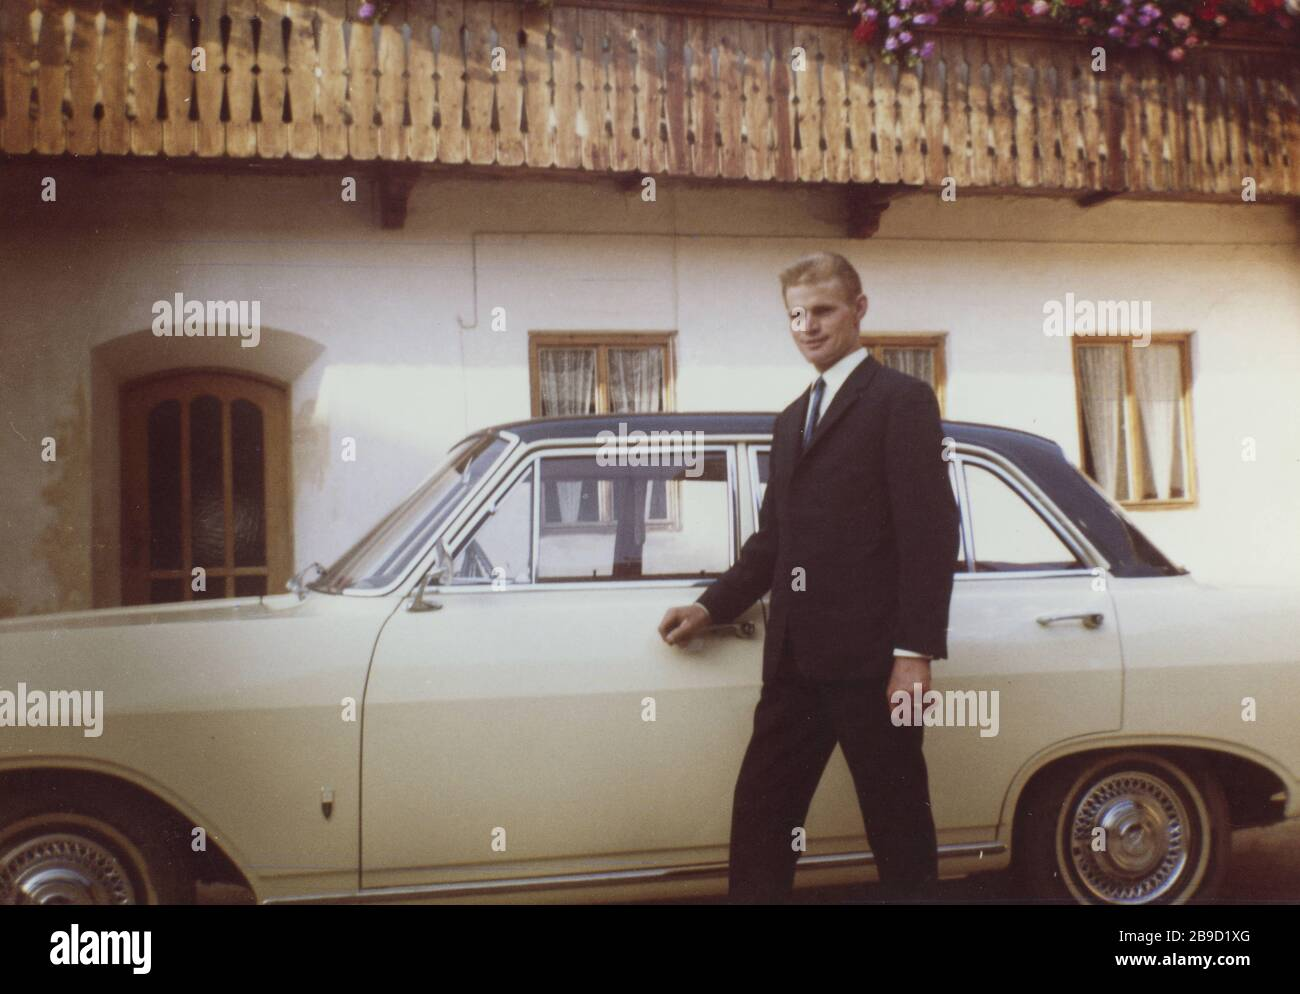 A young man in a suit poses in front of a beige car in front of an alpine style apartment building. [automated translation] Stock Photo